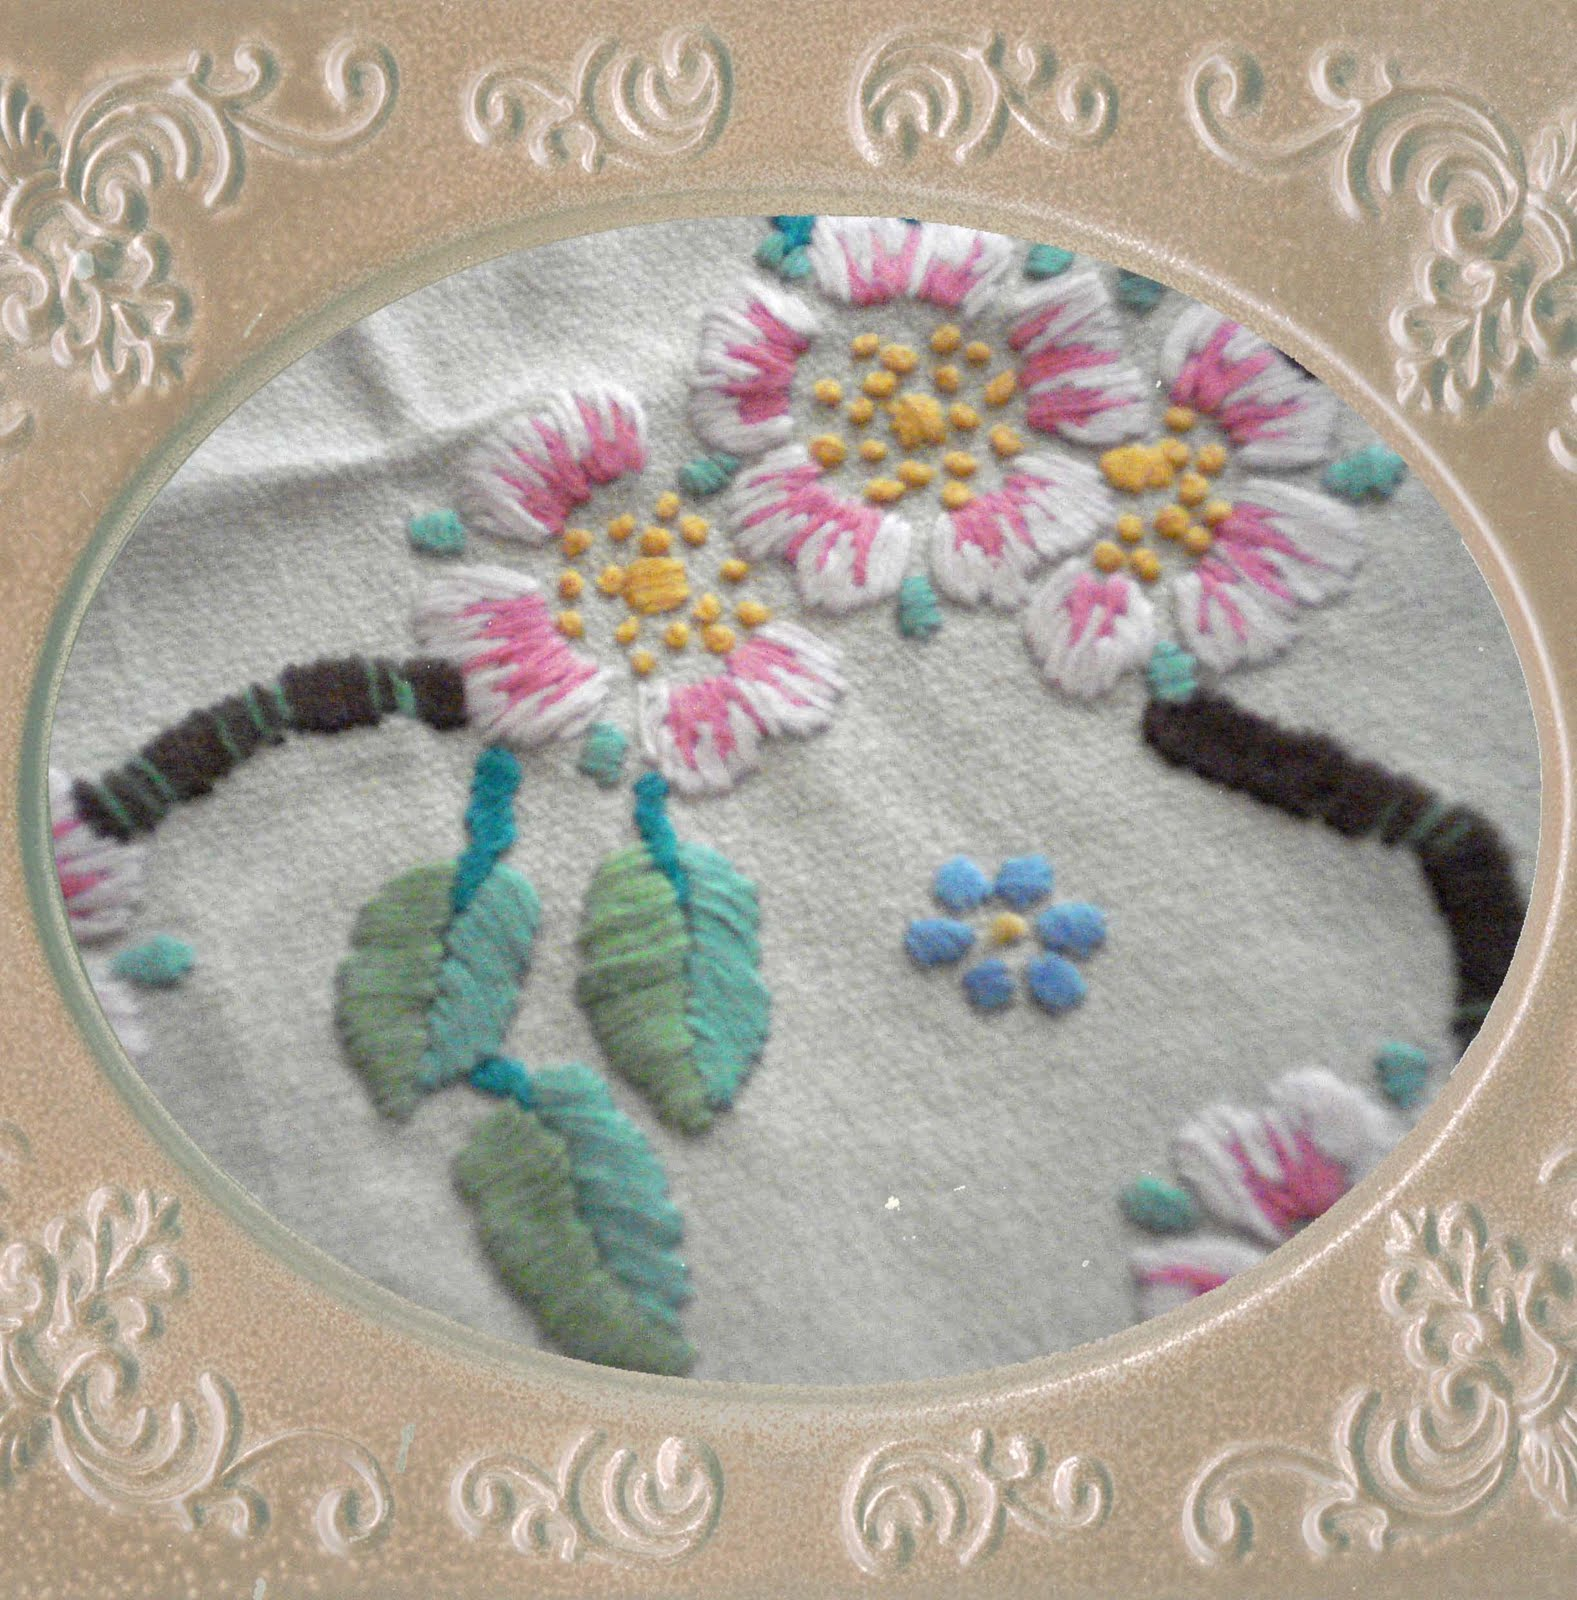 The Vintage Workshop At Country Graphics Beautiful Hand Made Embroidery - A Family Heirloom